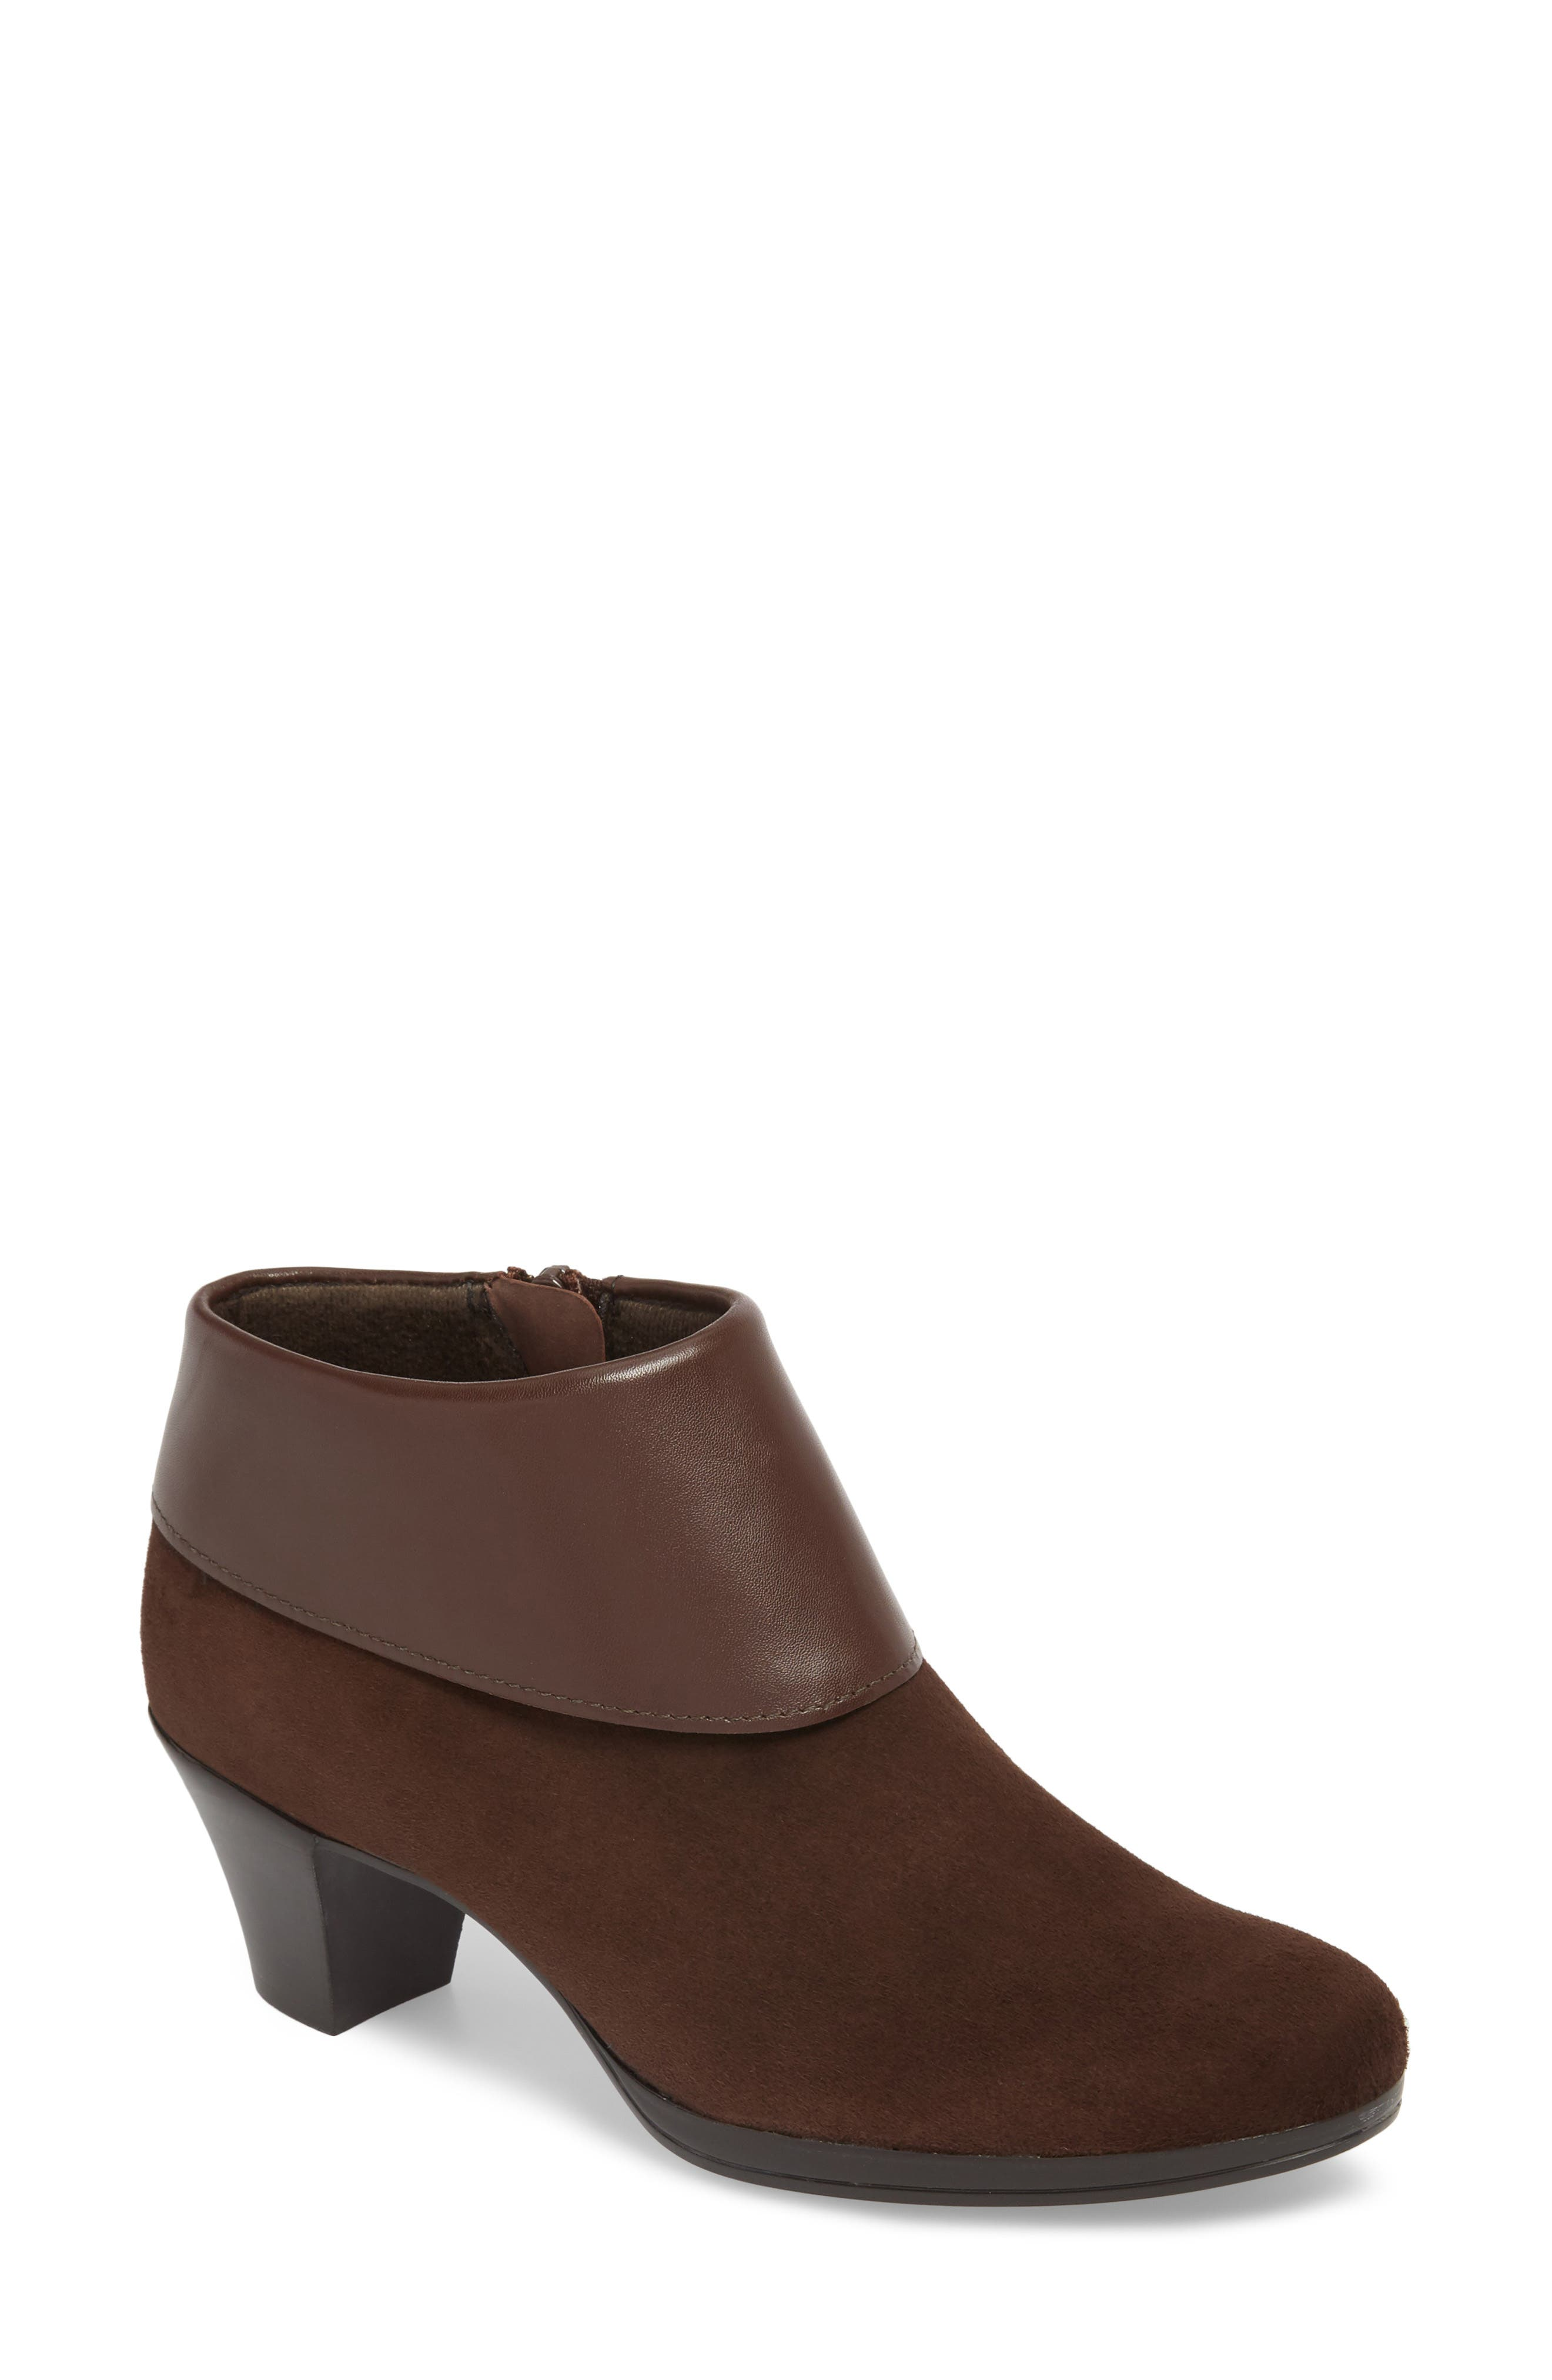 MUNRO, Gracee Boot, Main thumbnail 1, color, CHOCOLATE LEATHER